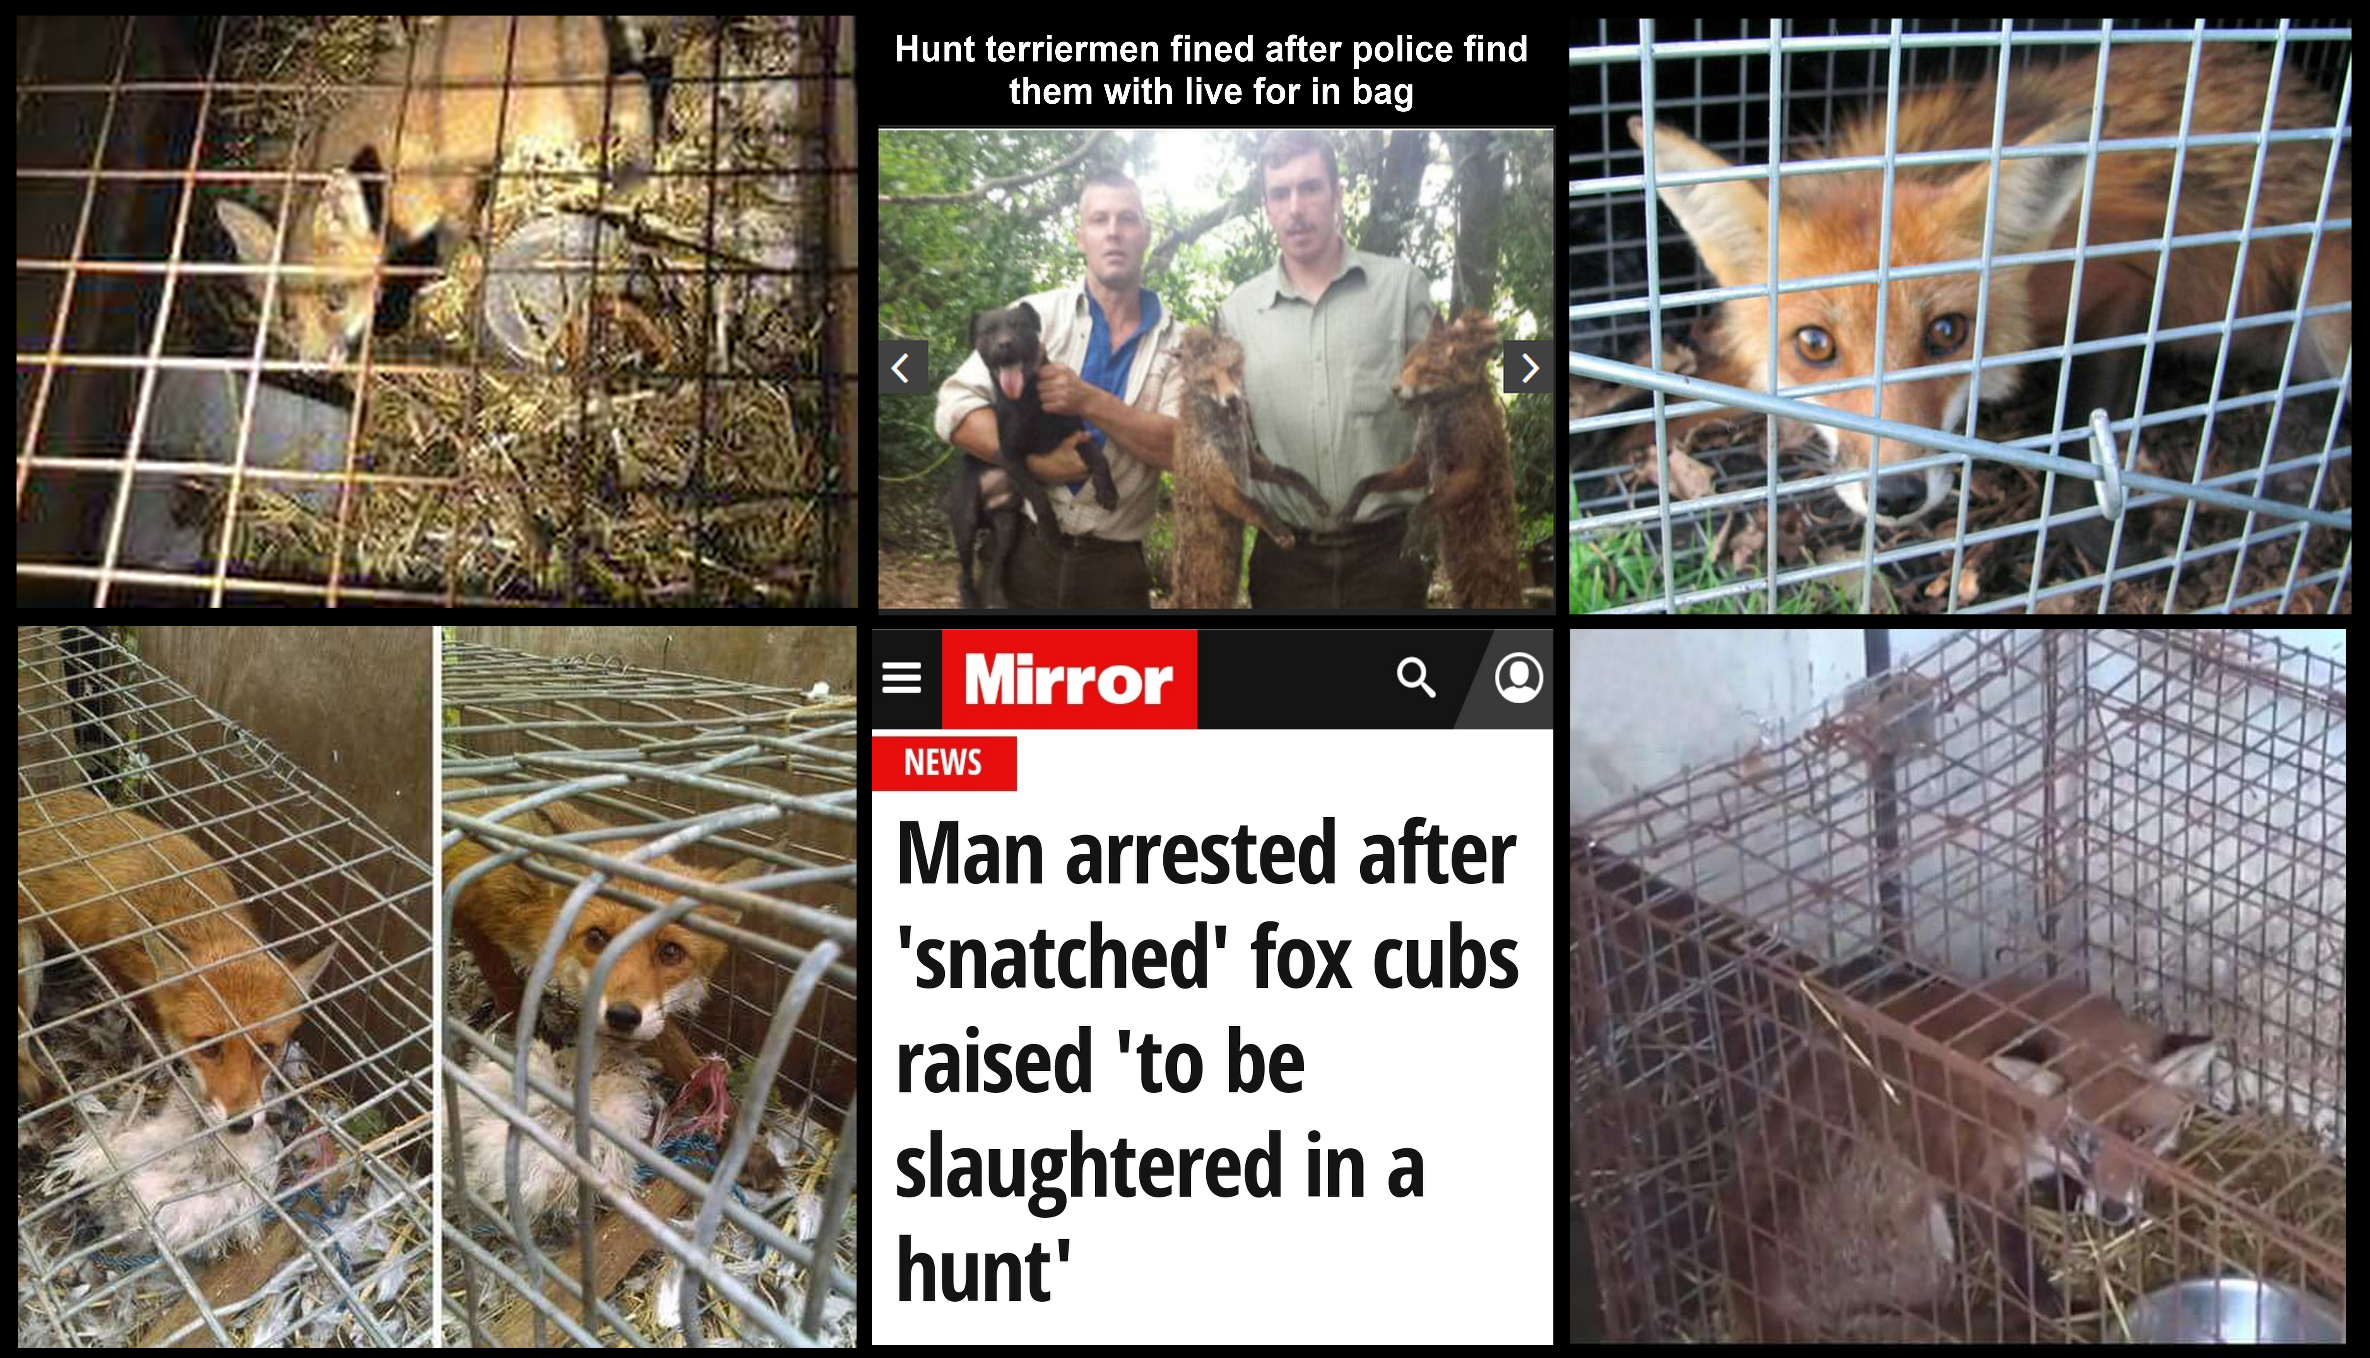 Foxes reared in cages